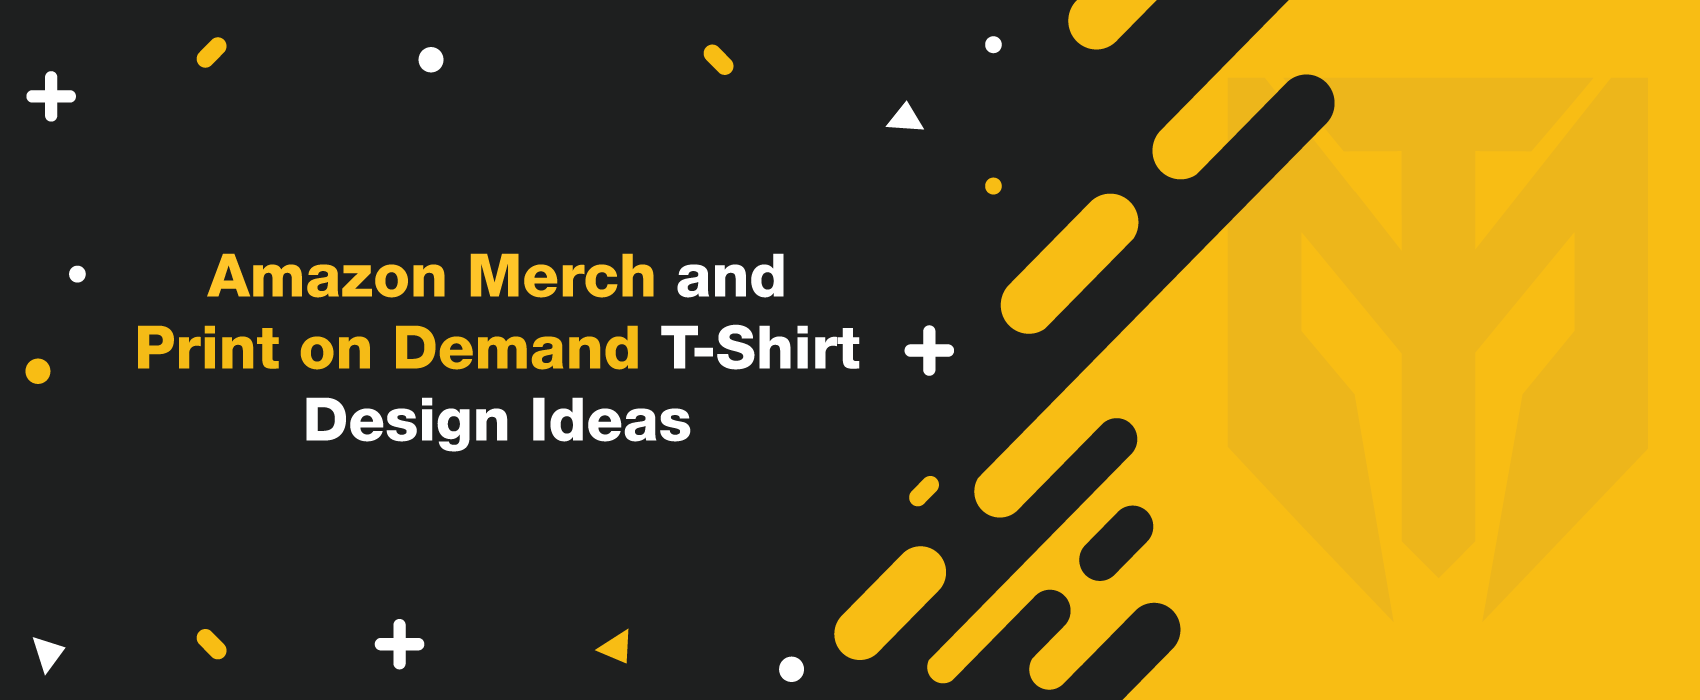 Amazon Merch and Print on Demand T-Shirt Design Ideas